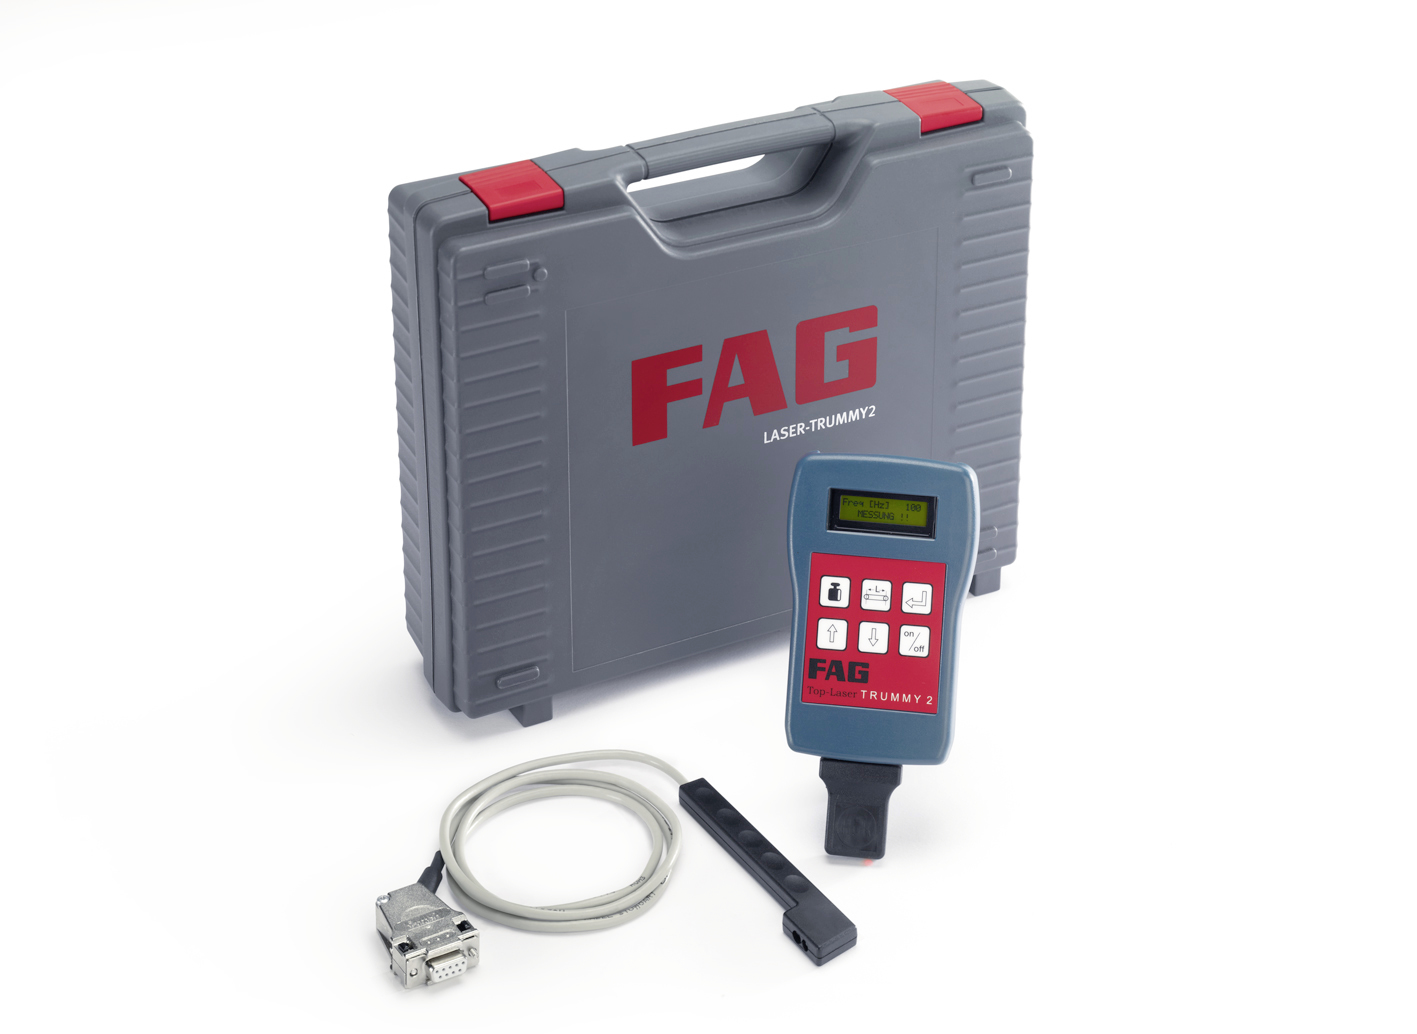 LASER TRUMMY 2: FAG Top-Laser TRUMMY2 Tool - Belt Tension Measuring Device